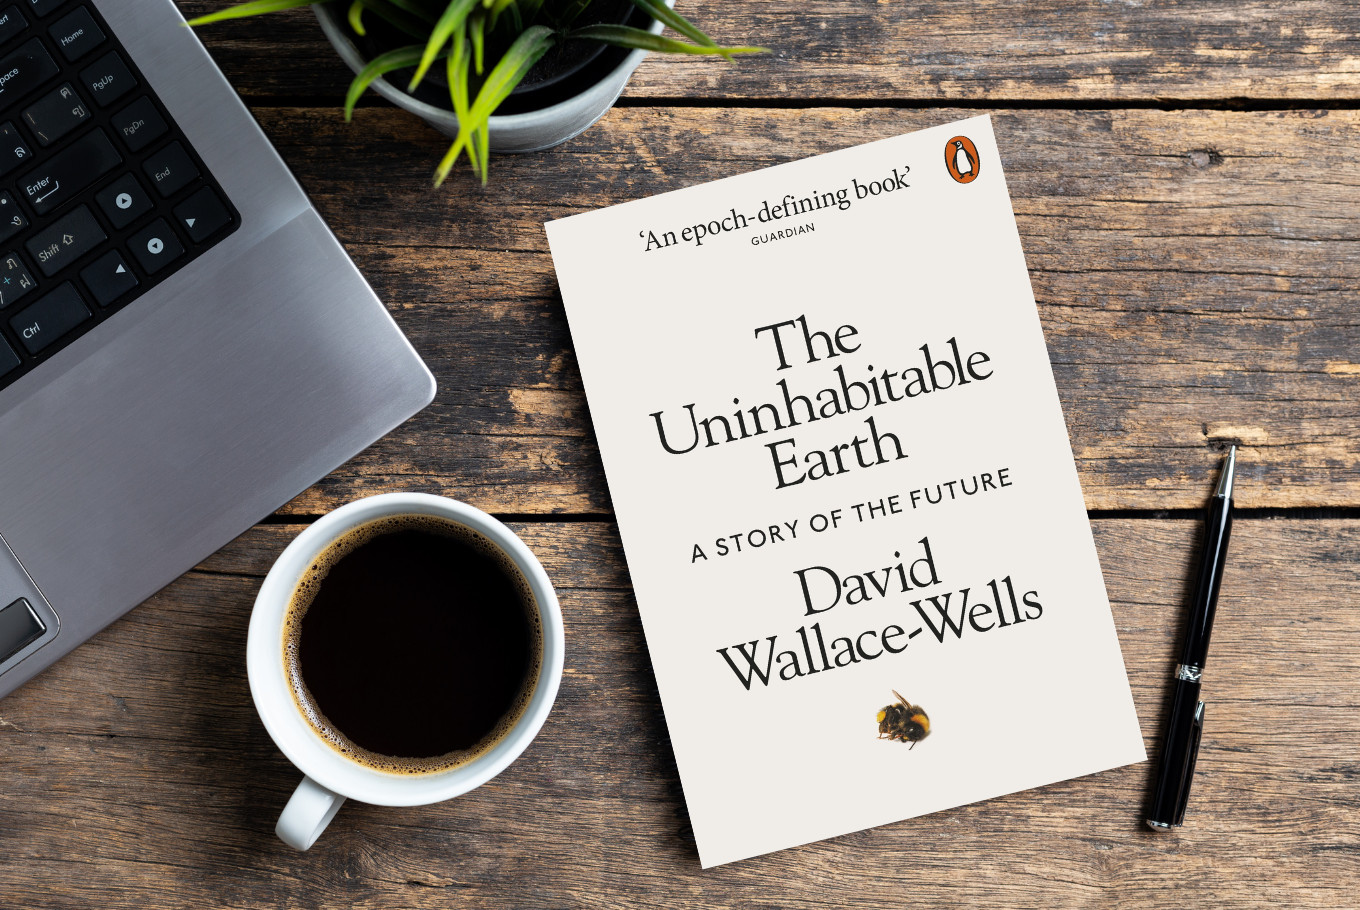 'The Uninhabitable Earth': Unpleasant wake-up call to harrowing future